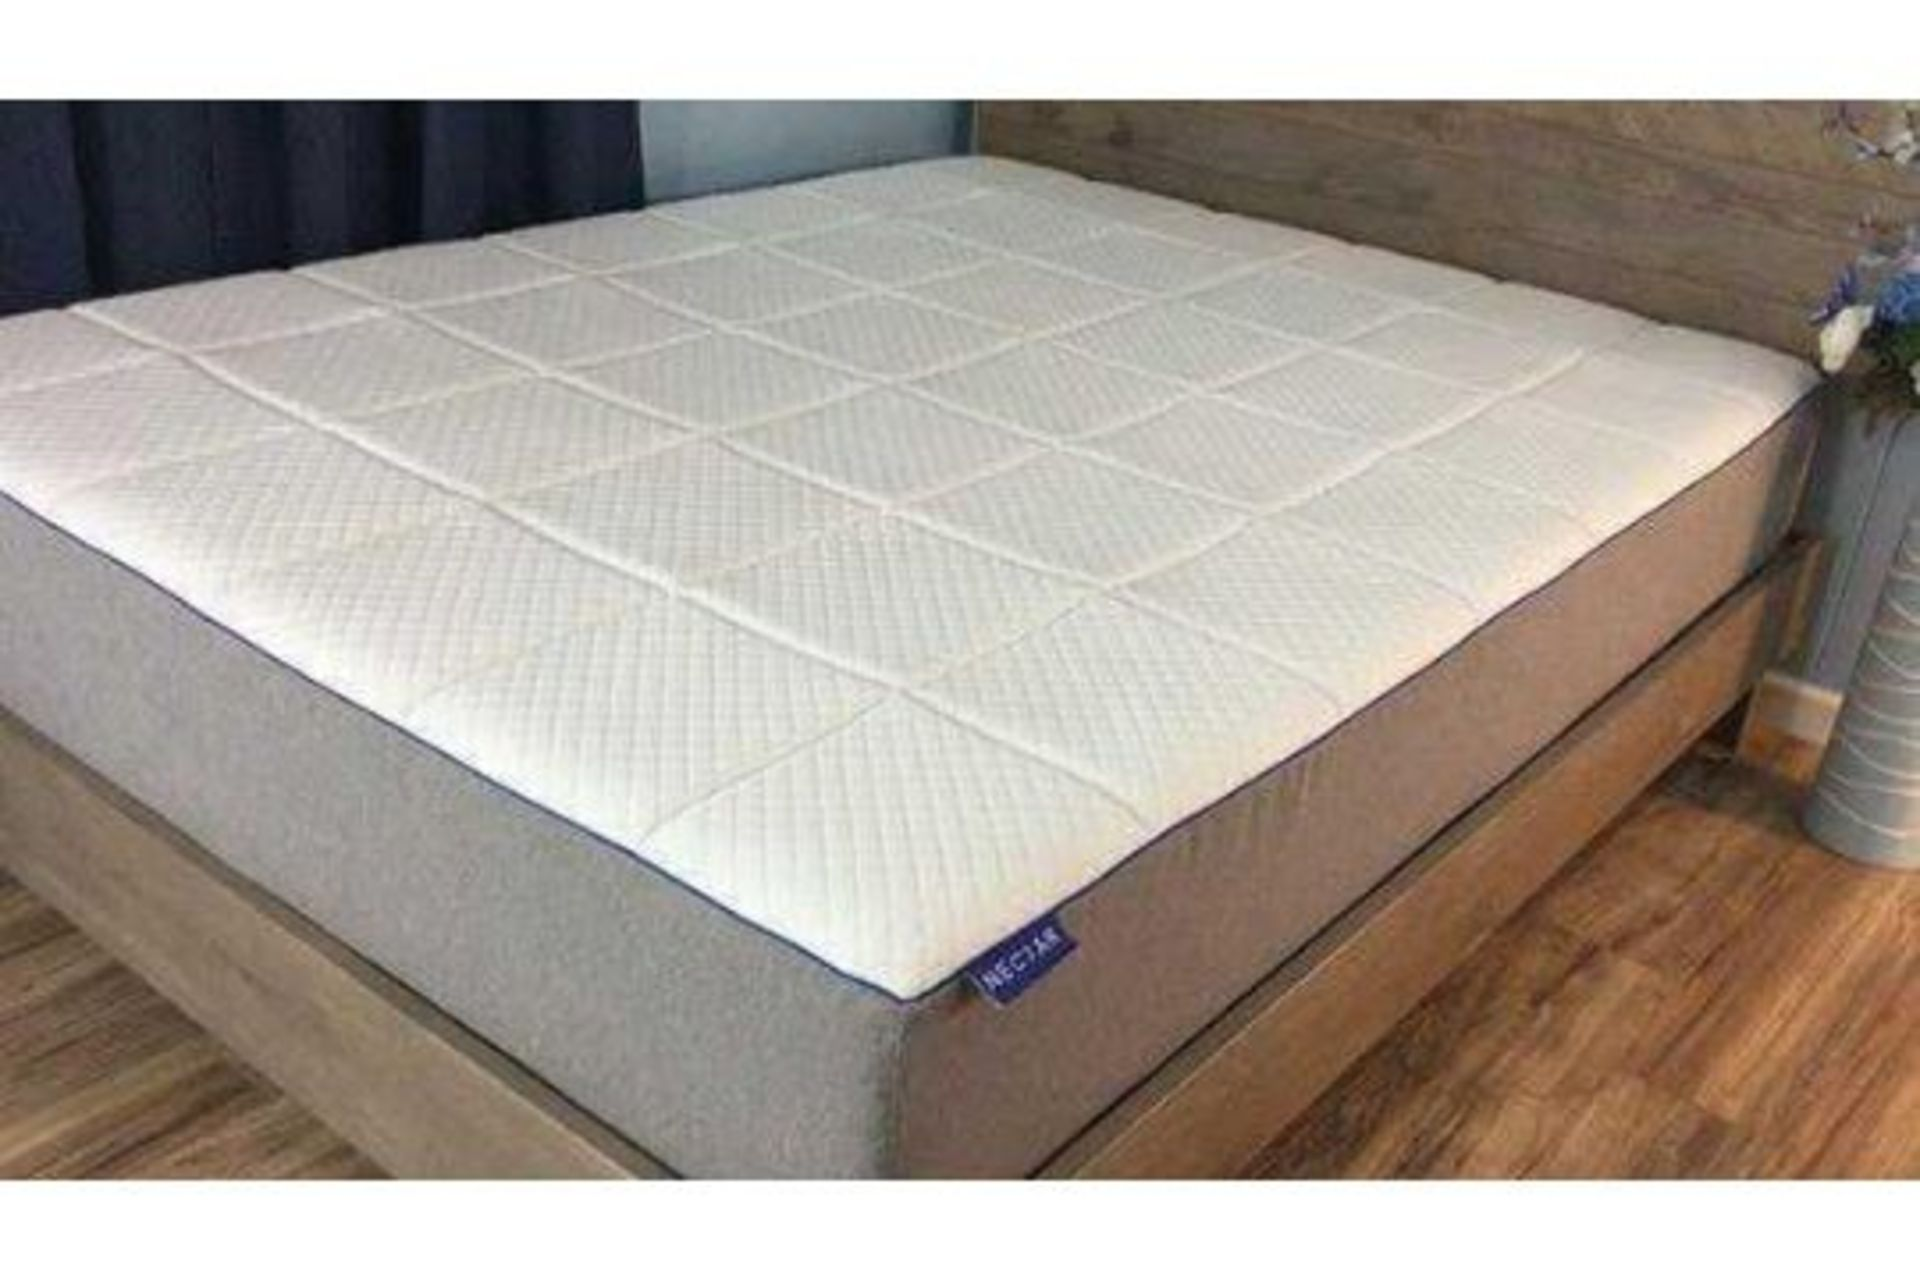 RRP £550 Bagged Nectar Double Pressure Releaving Memory Foam Mattress With 3-Layer Foam